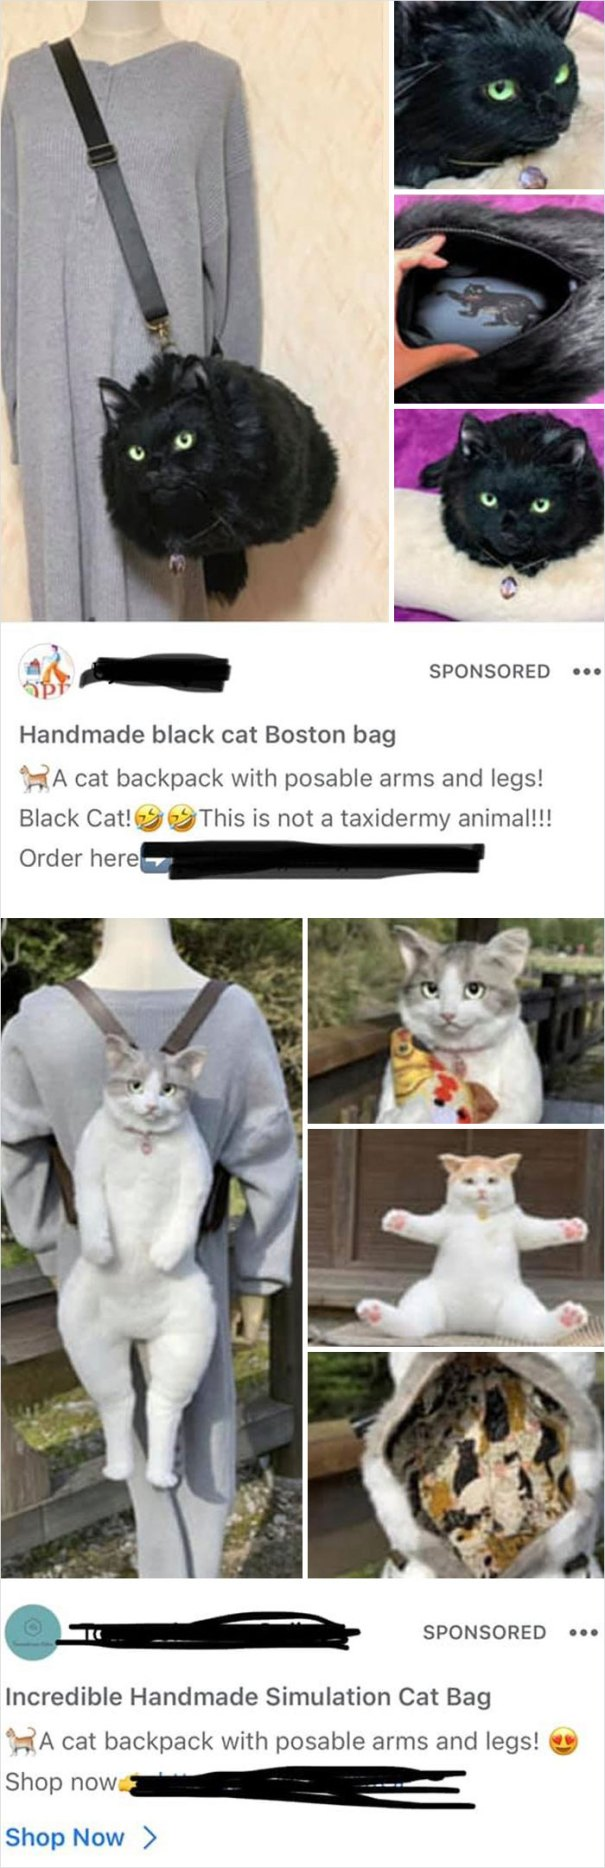 For When You Want Strangers To Stop You And/Or Just Immediately Call The Police For Animal Abuse